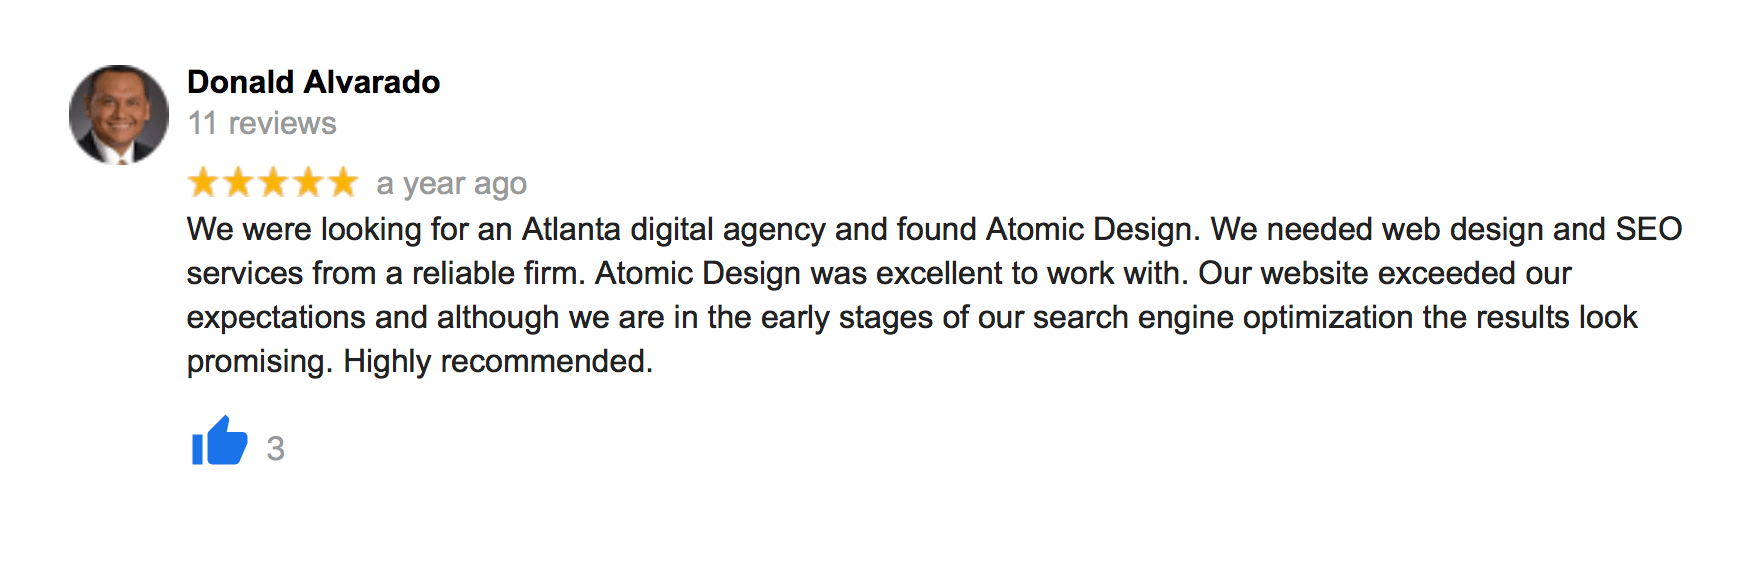 Reviews 0 atlanta seo web atomic design reviews